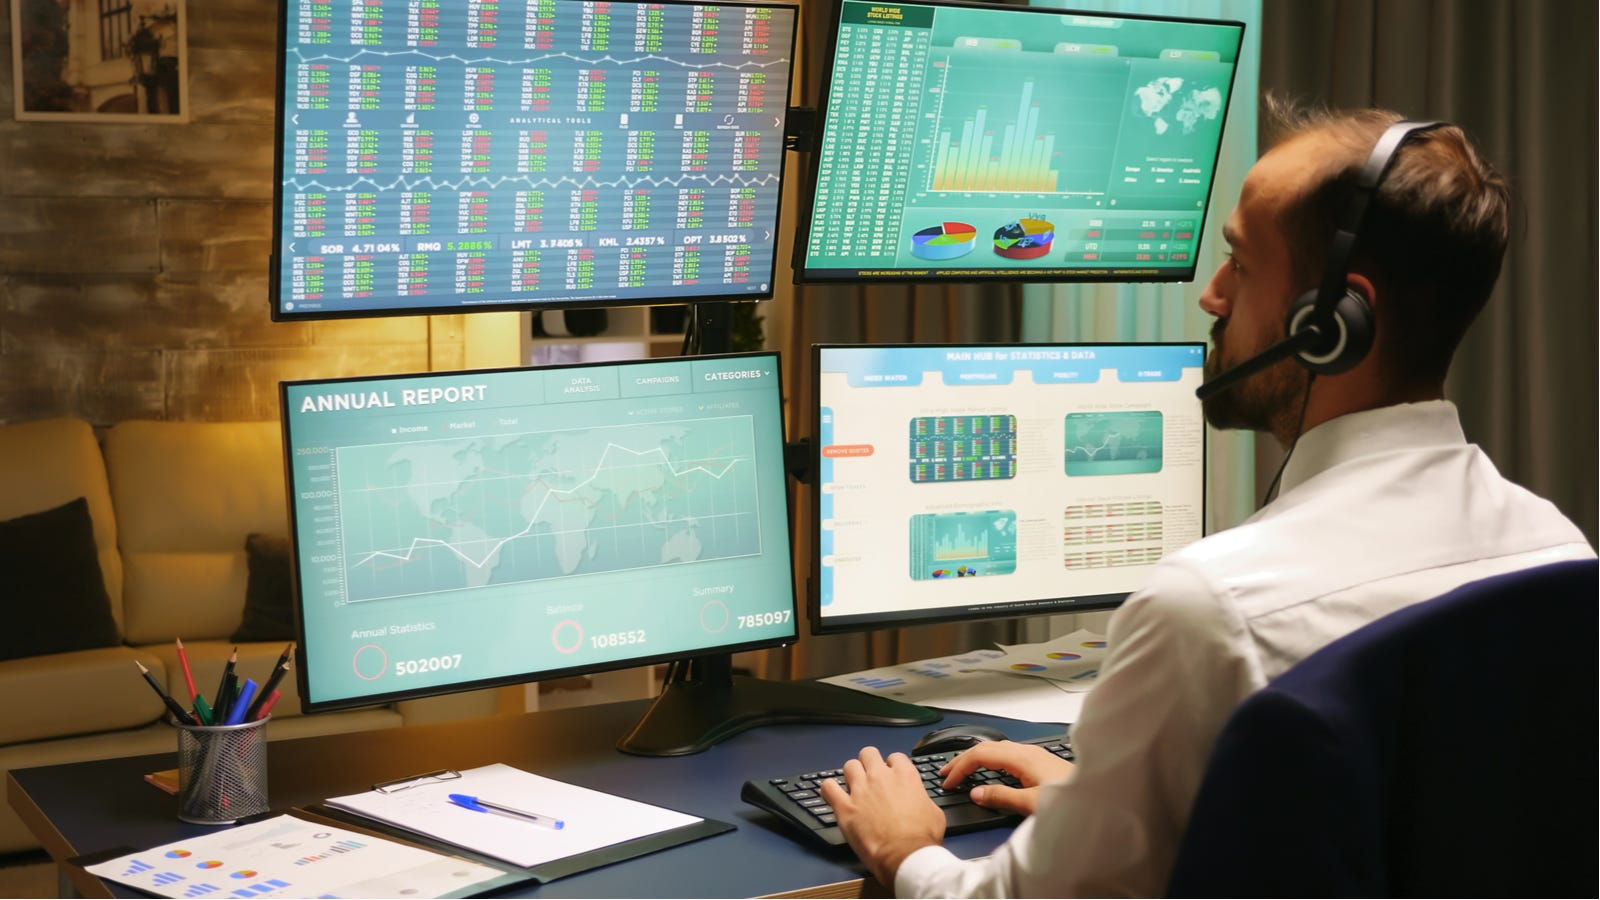 Stock trader operating multiple monitors stacked on top of each other